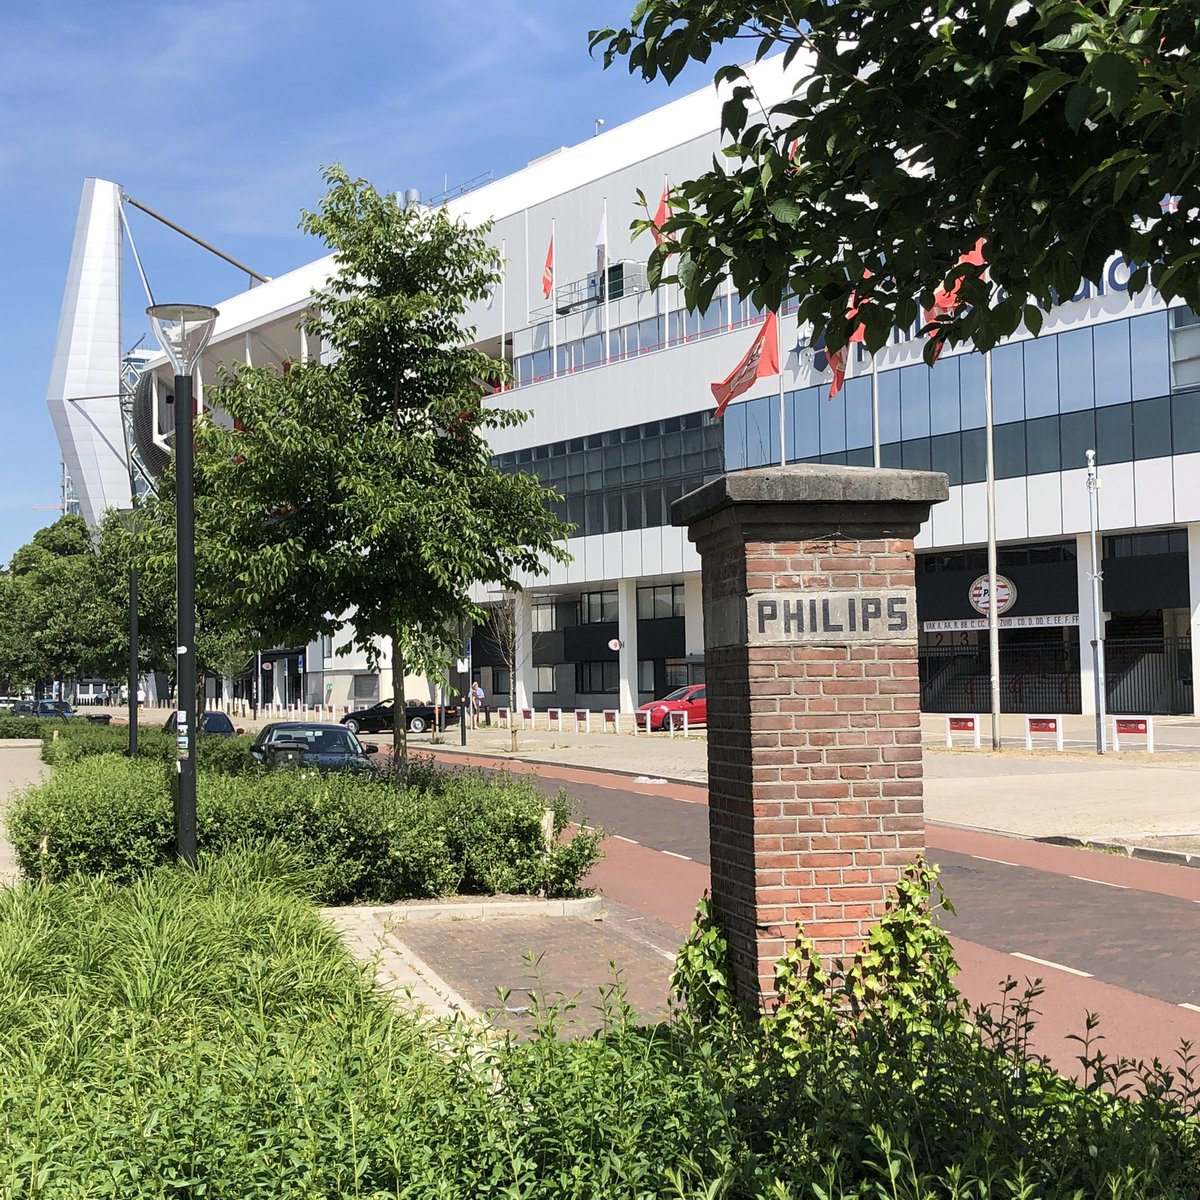 #philips stadion #Eindhoven #PSV pic.twitter.com/JP1cYK7gb3